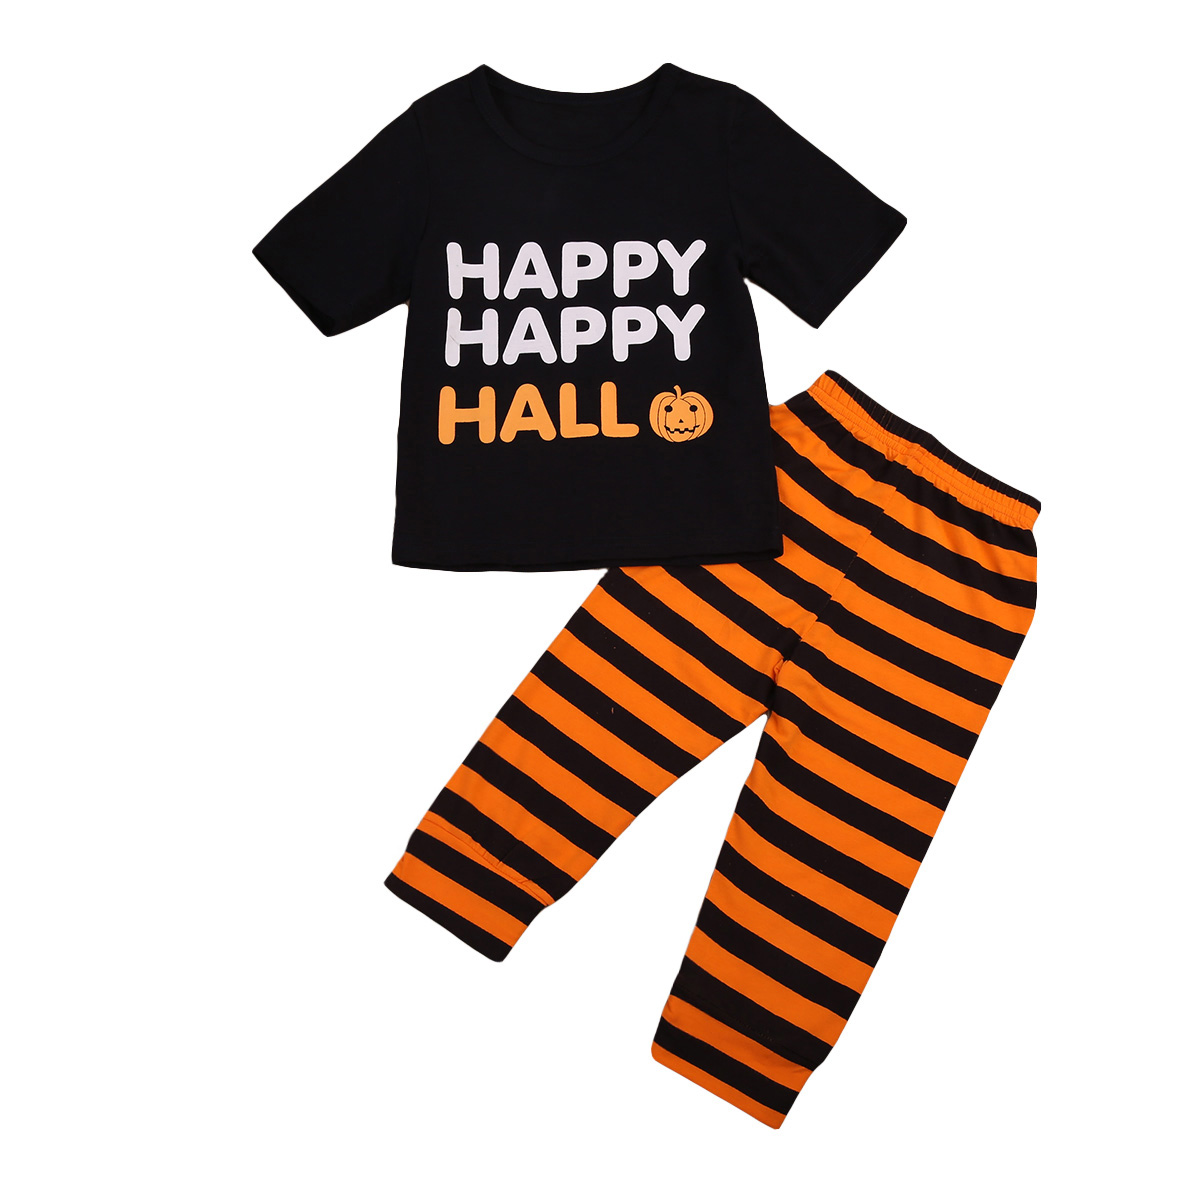 Pudcoco 2PCS Kids Baby Toddler Boy Girl Clothes Halloween Set Happy T-shirt Top+Striped Pants Leggings Outfit Clothes 0-24M